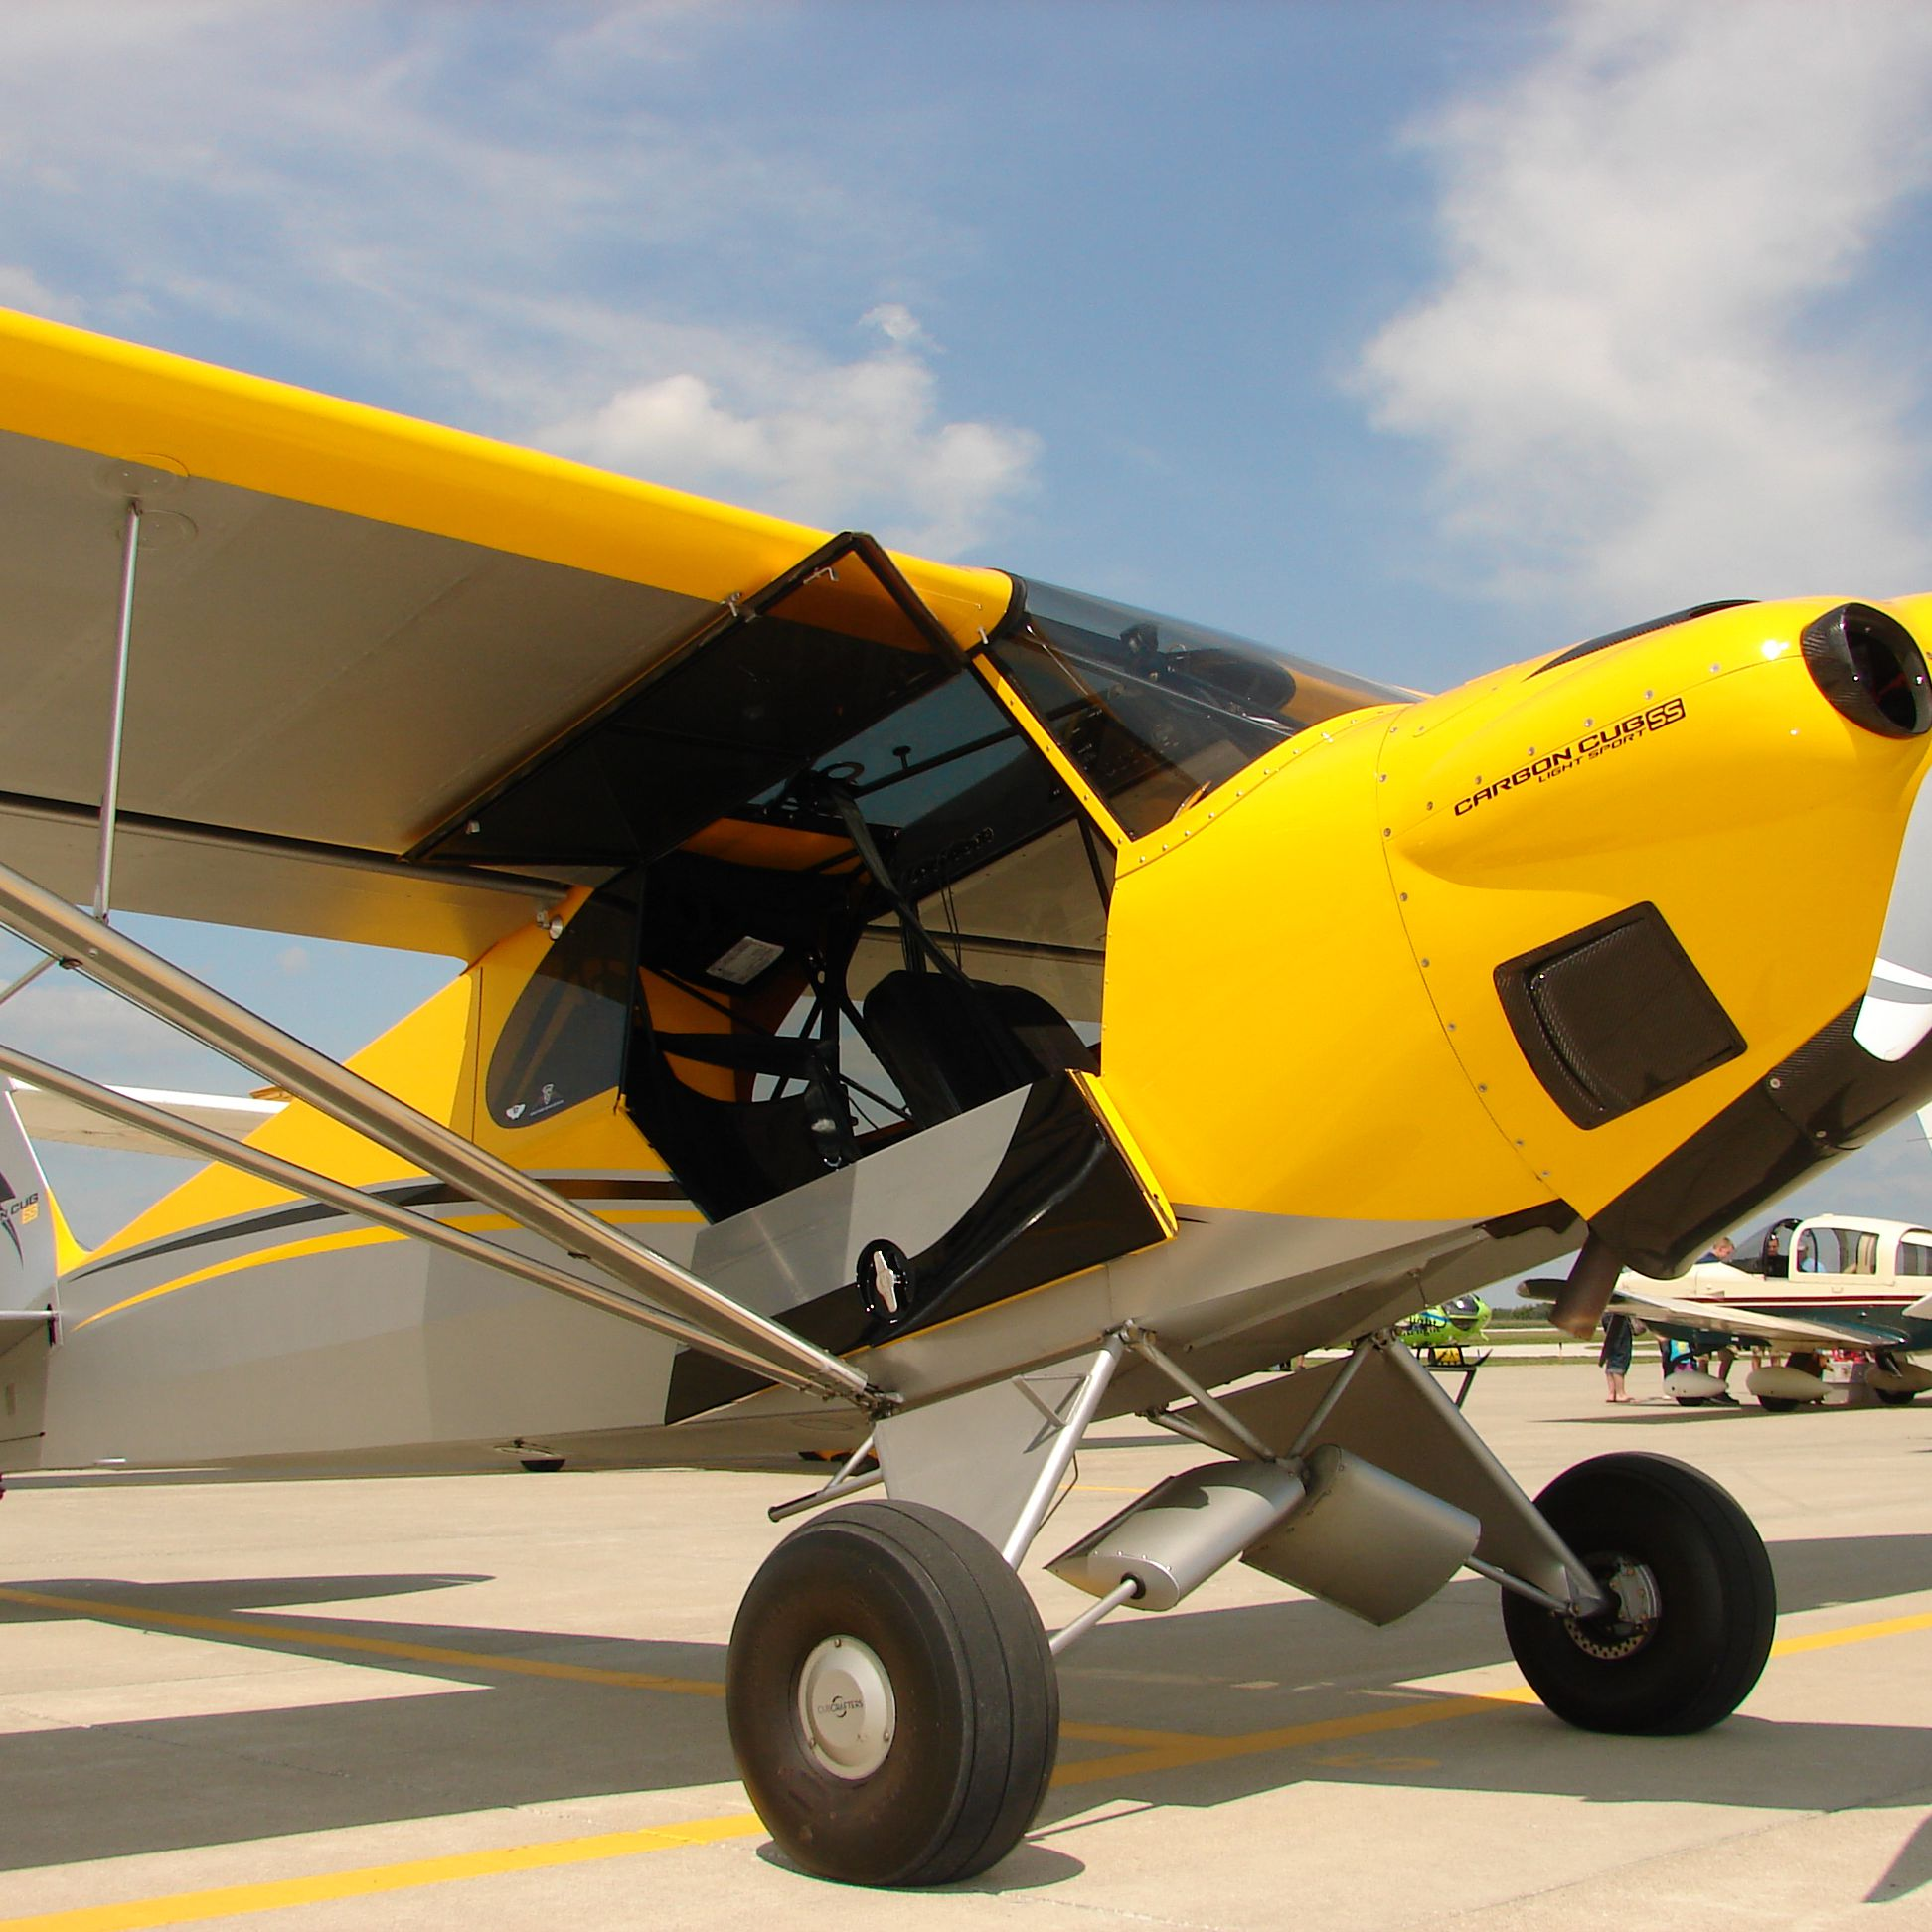 The Pros and Cons of Piloting Tailwheel Aircraft